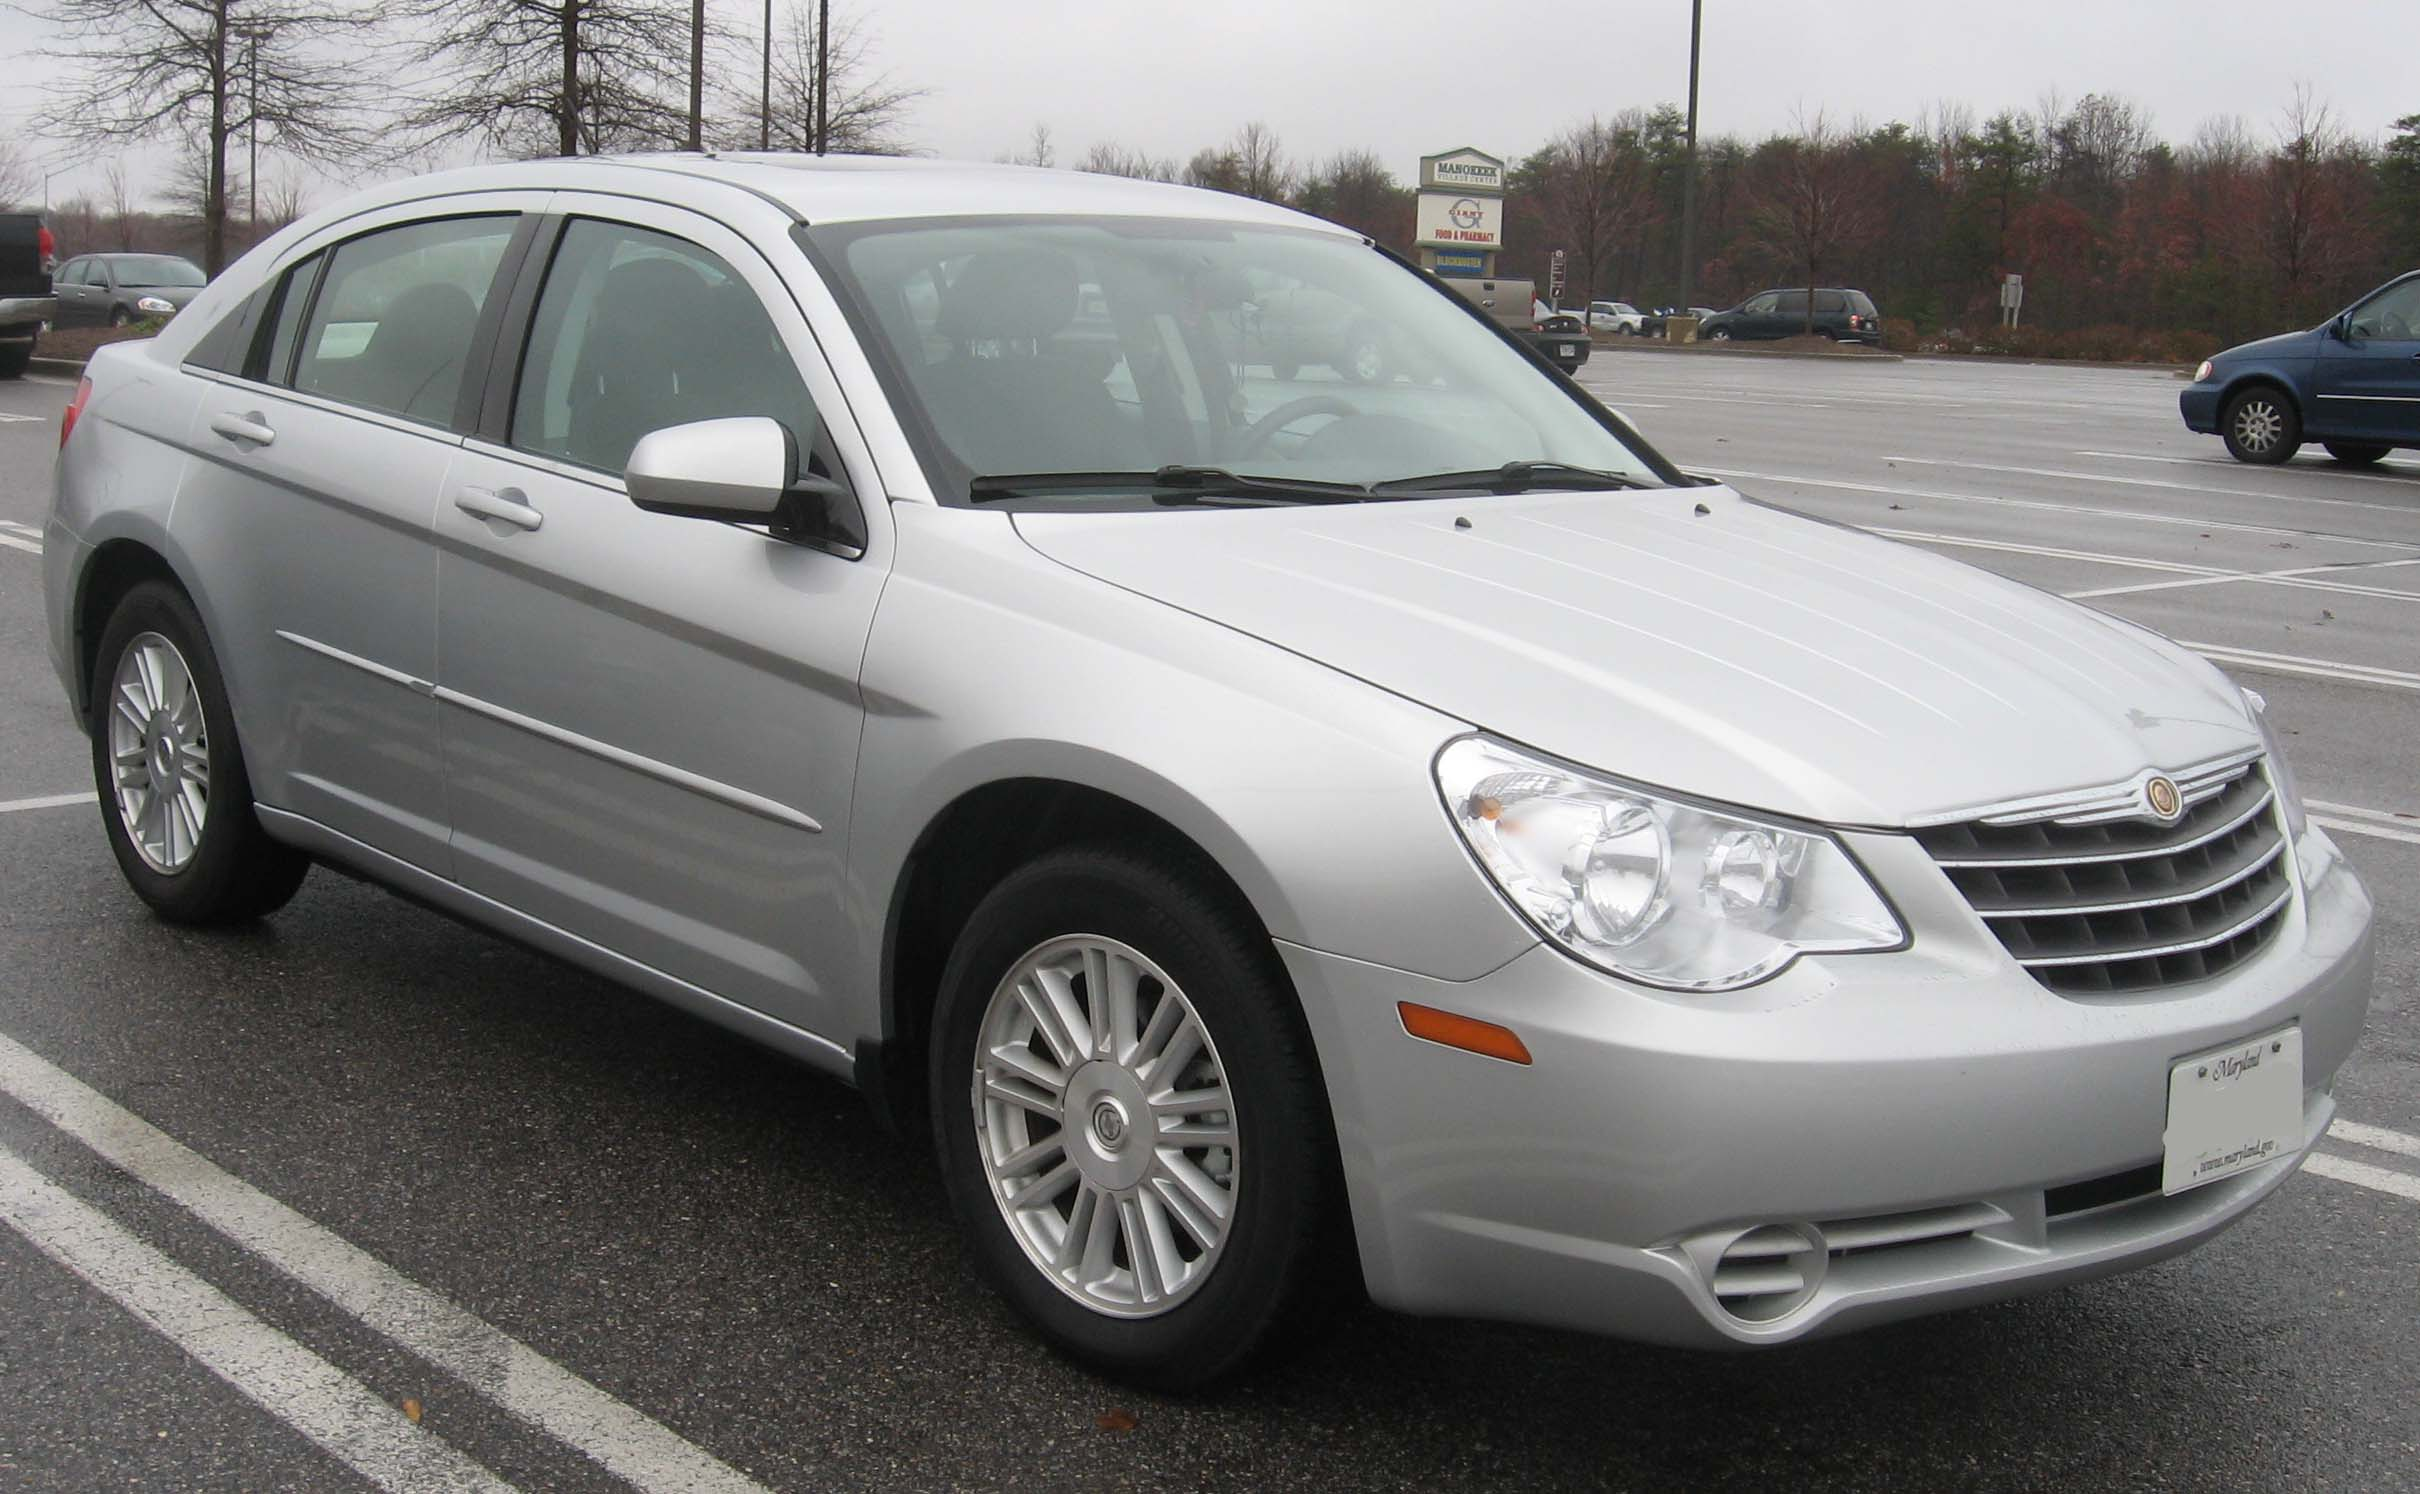 Cars chrysler sebring #6